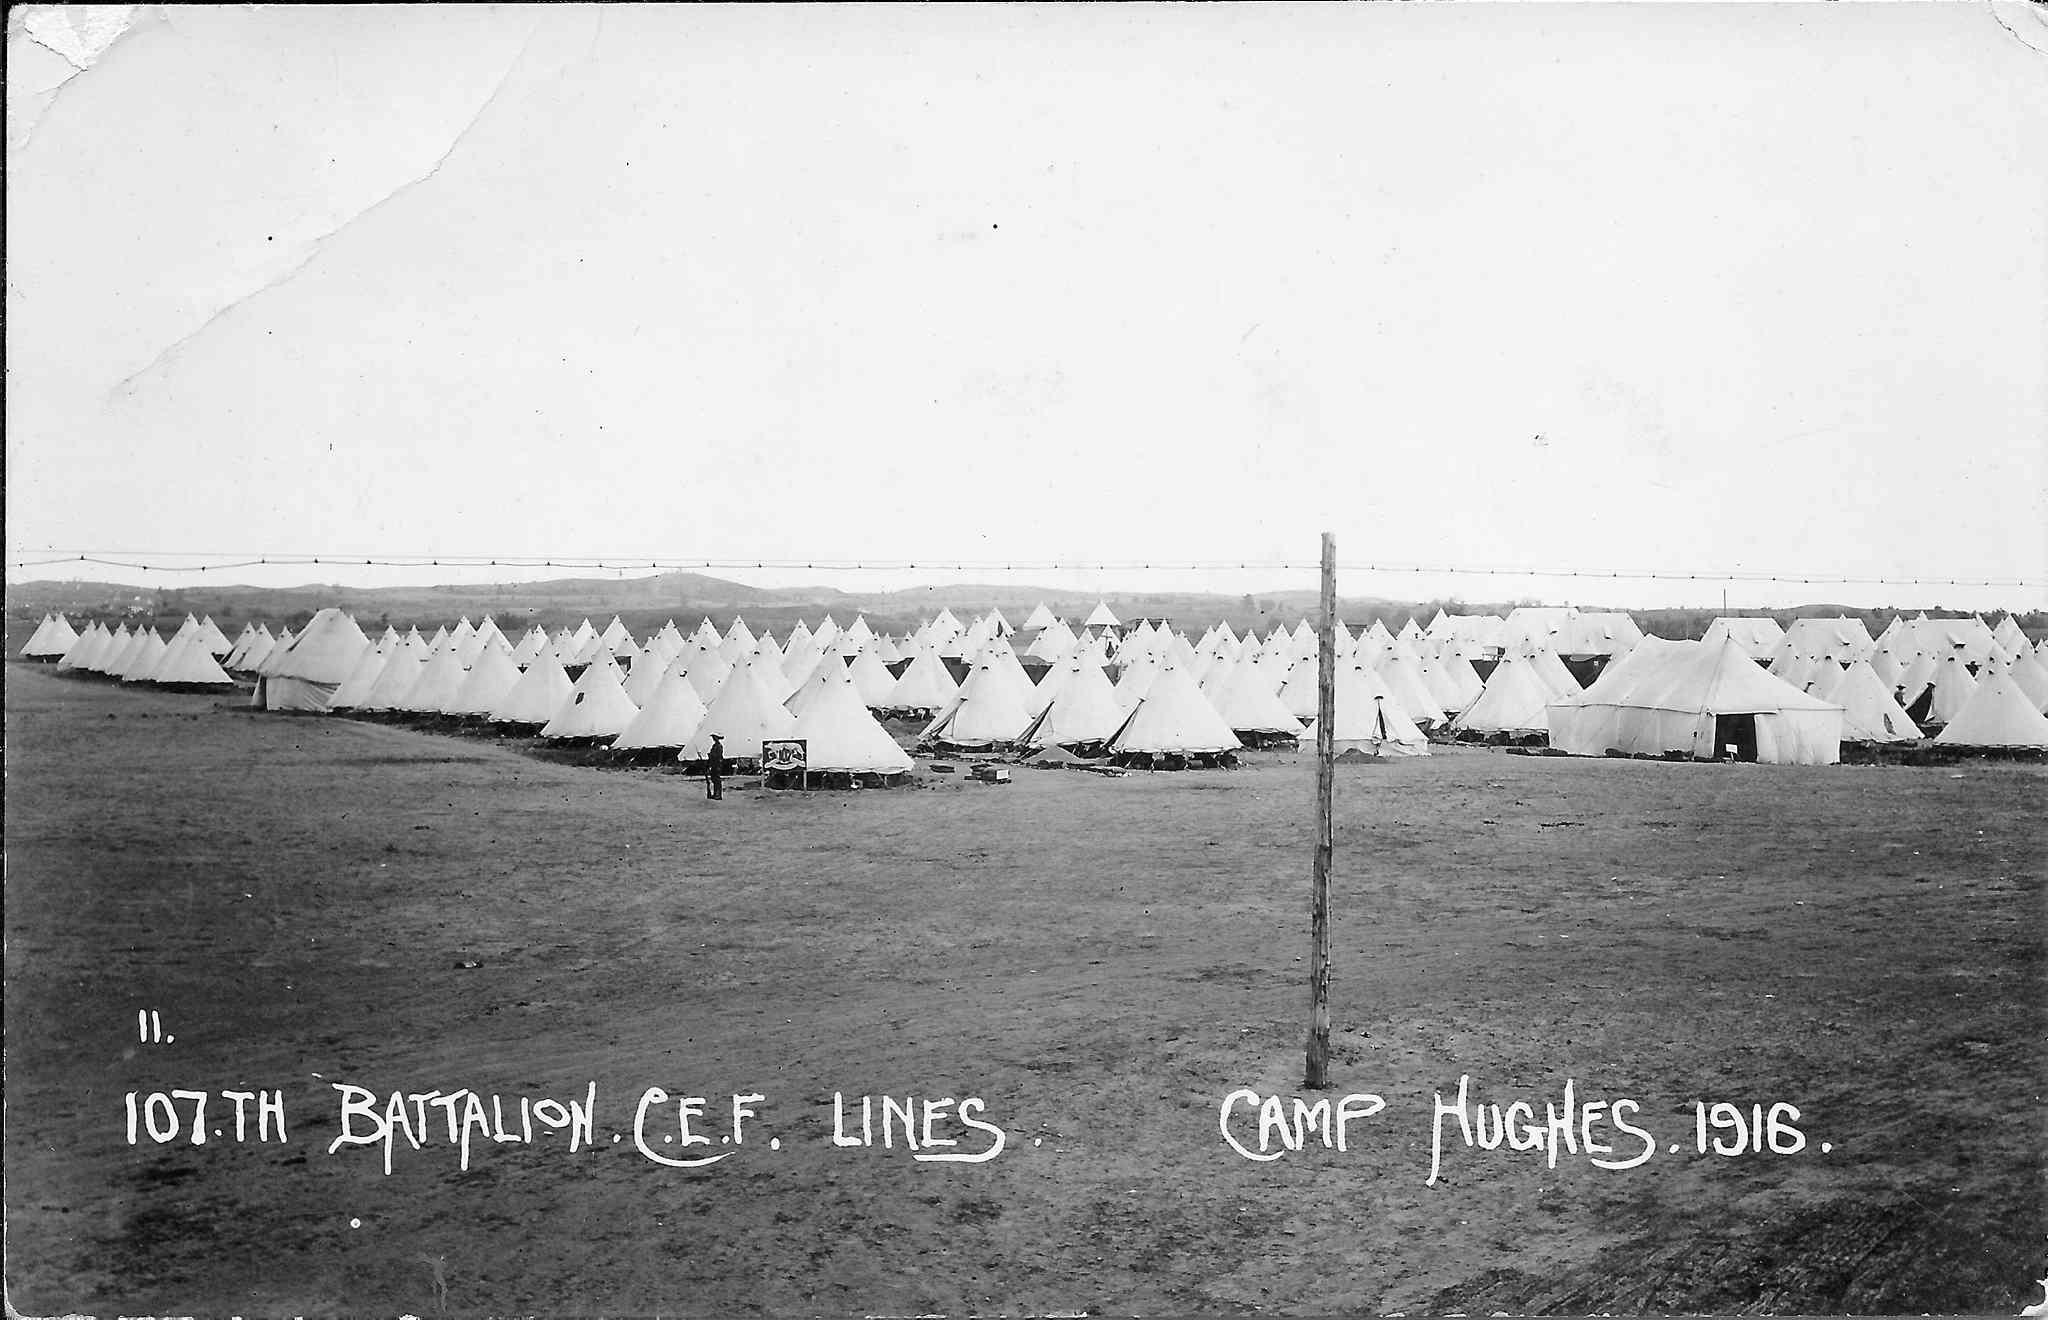 Soldiers' tents at Camp Hughes, 1916.